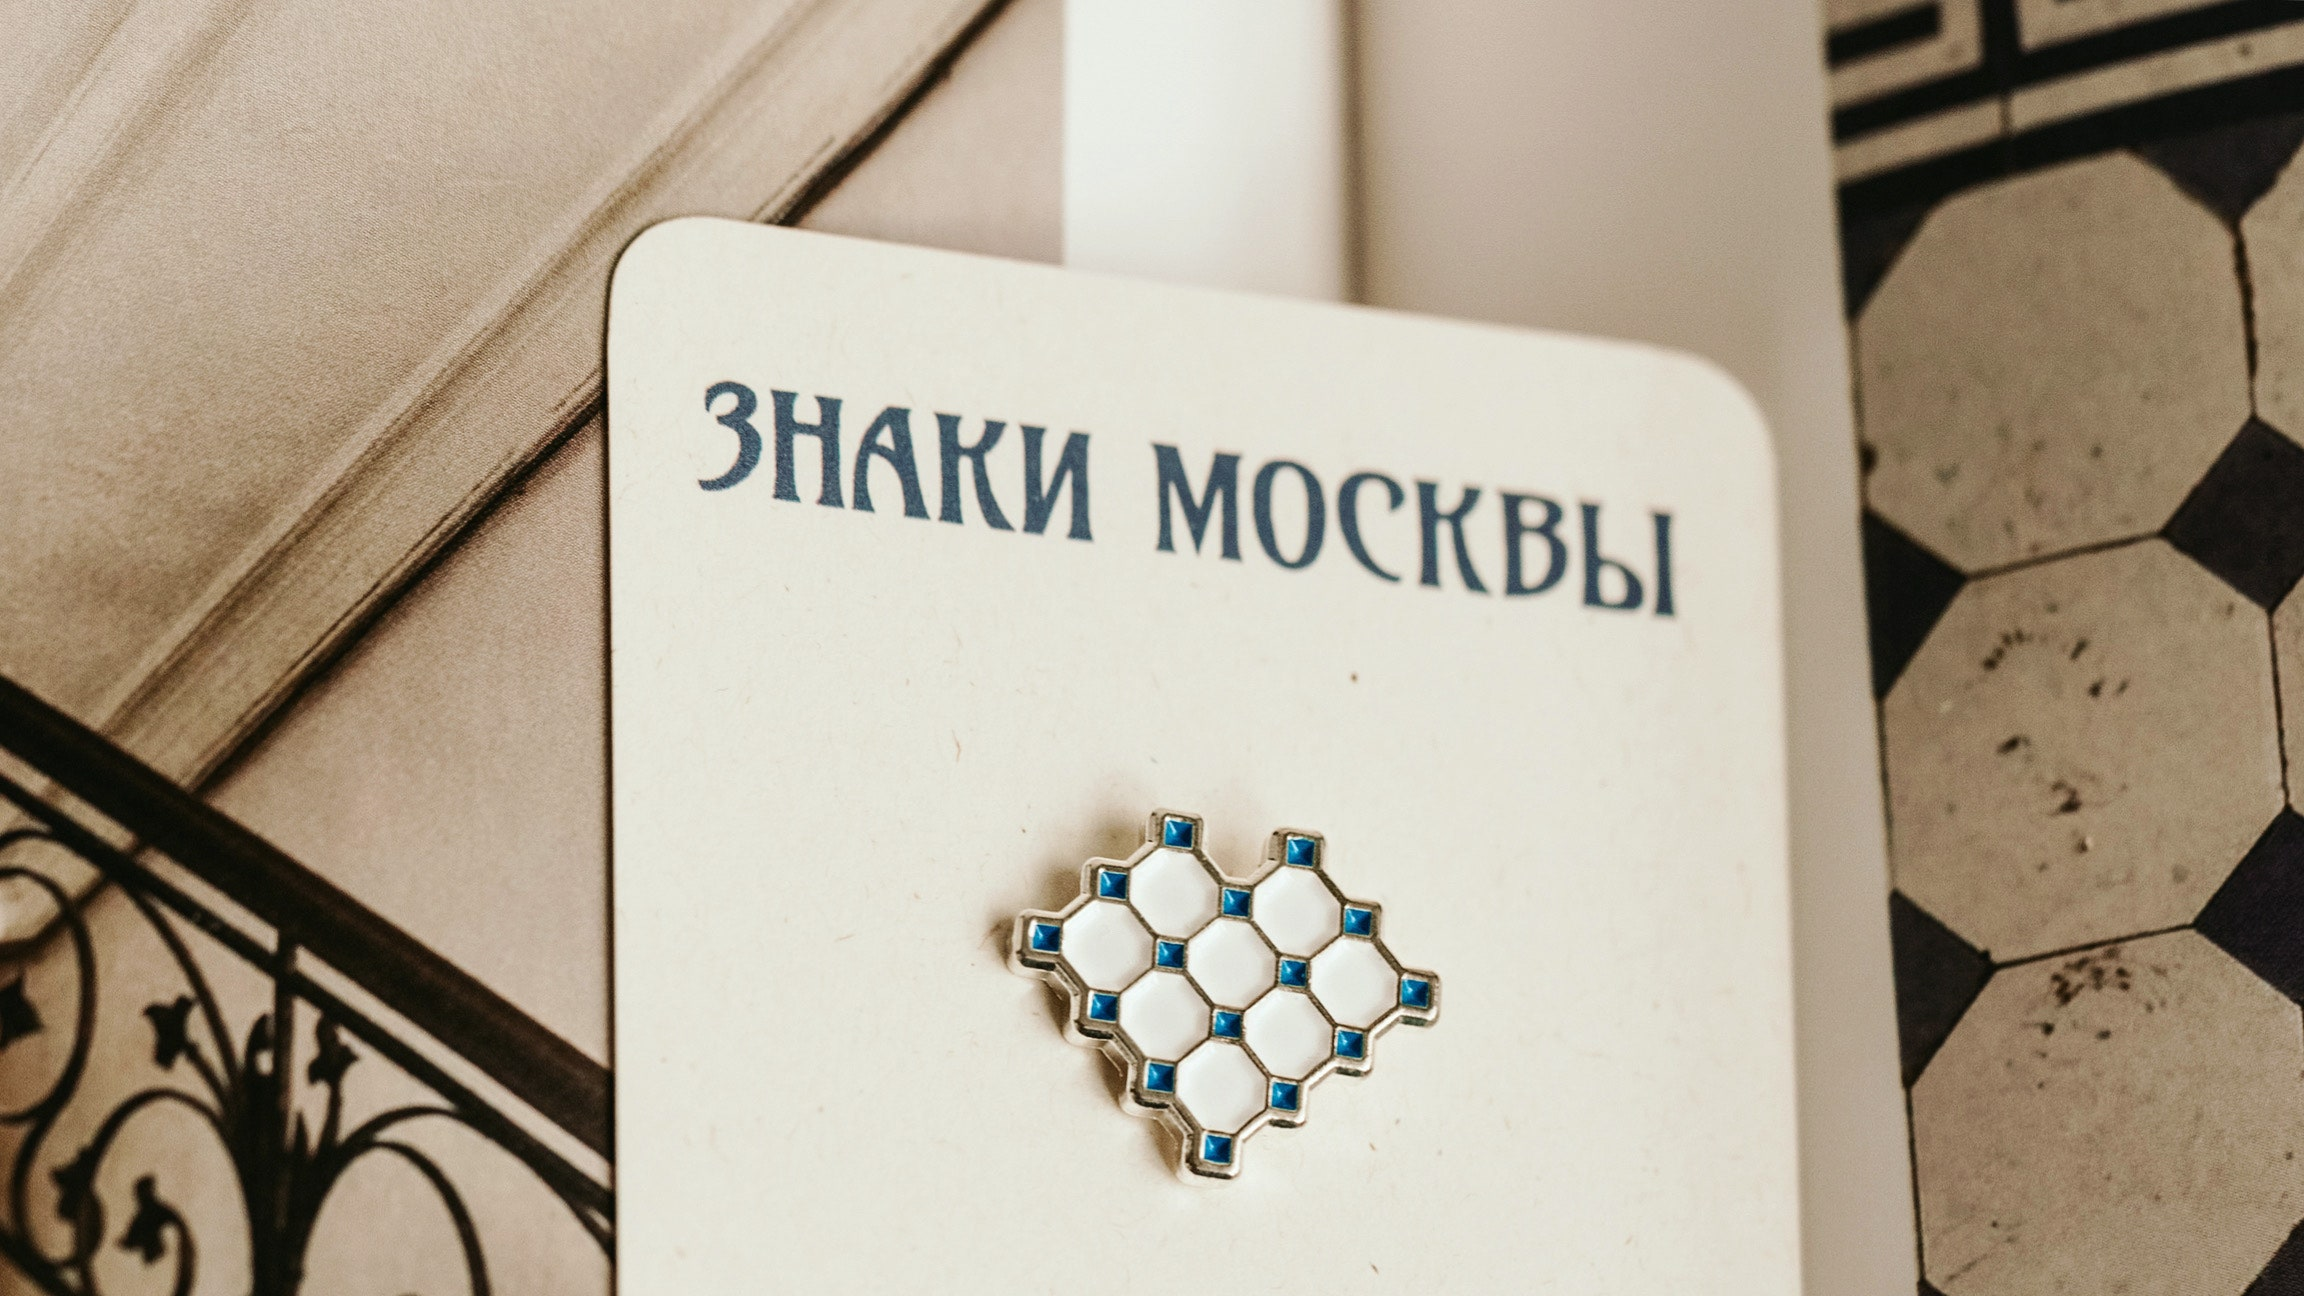 Moscow Signs